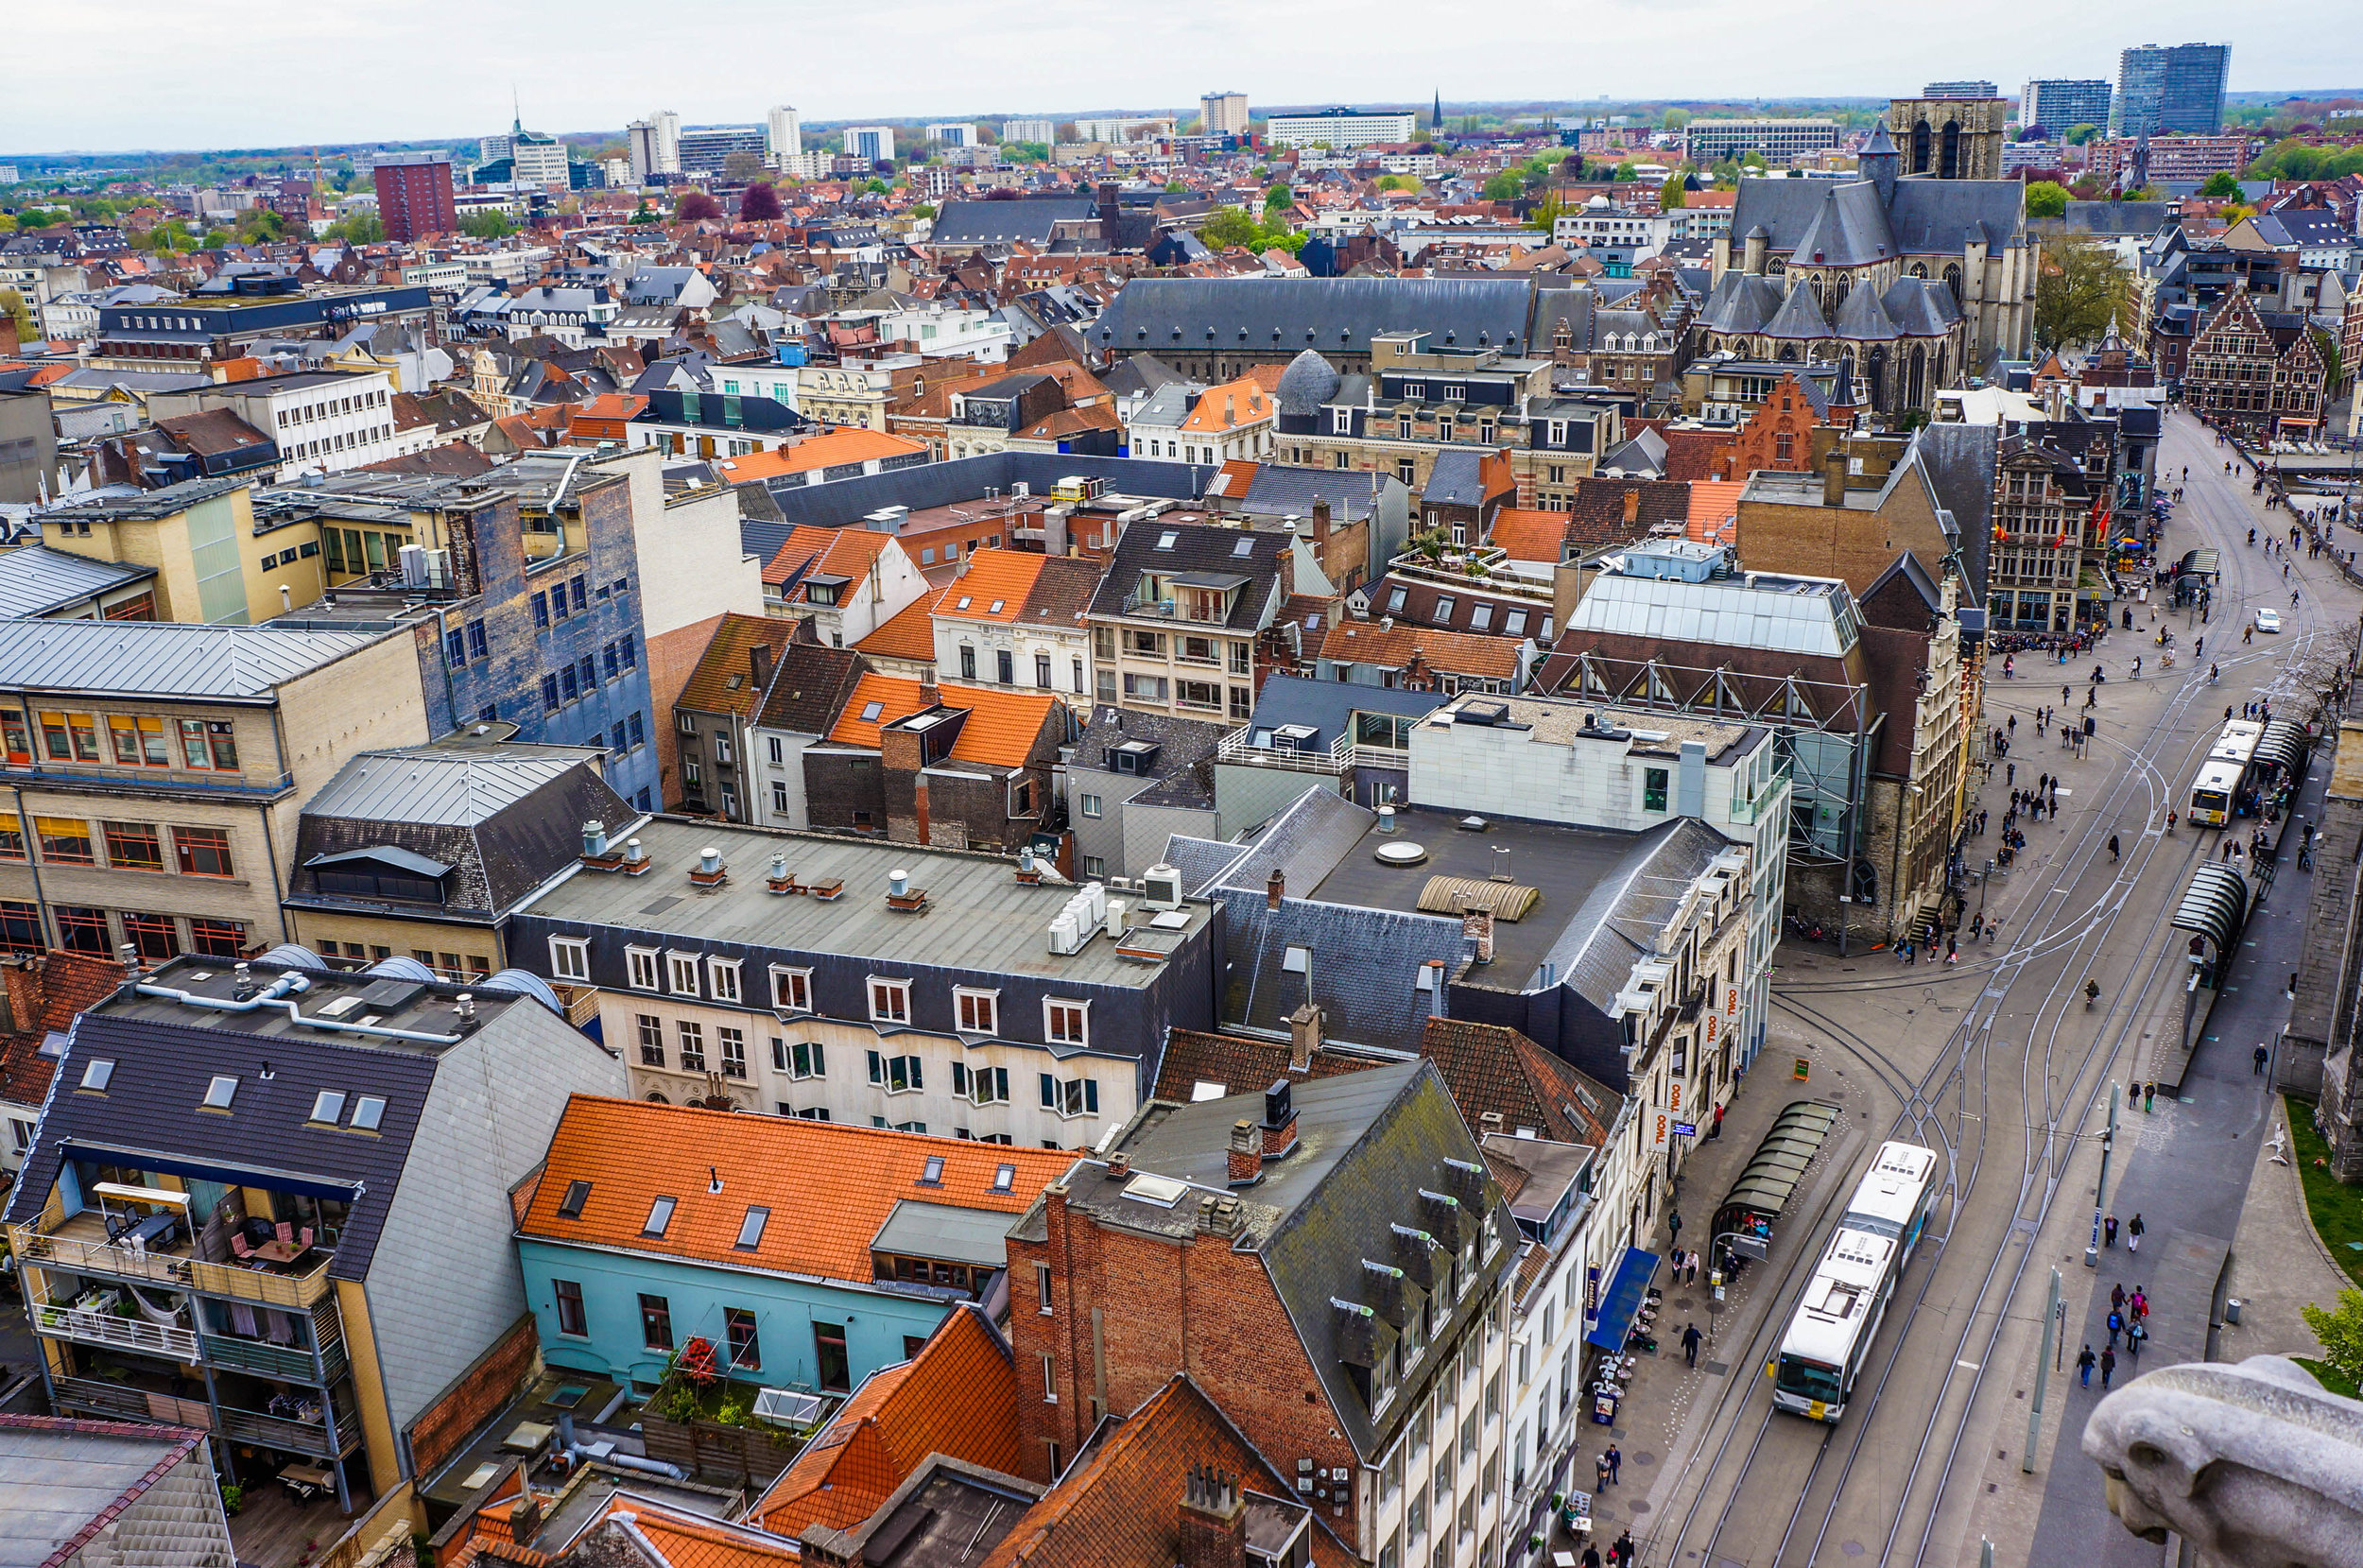 View from the Belfry of Ghent